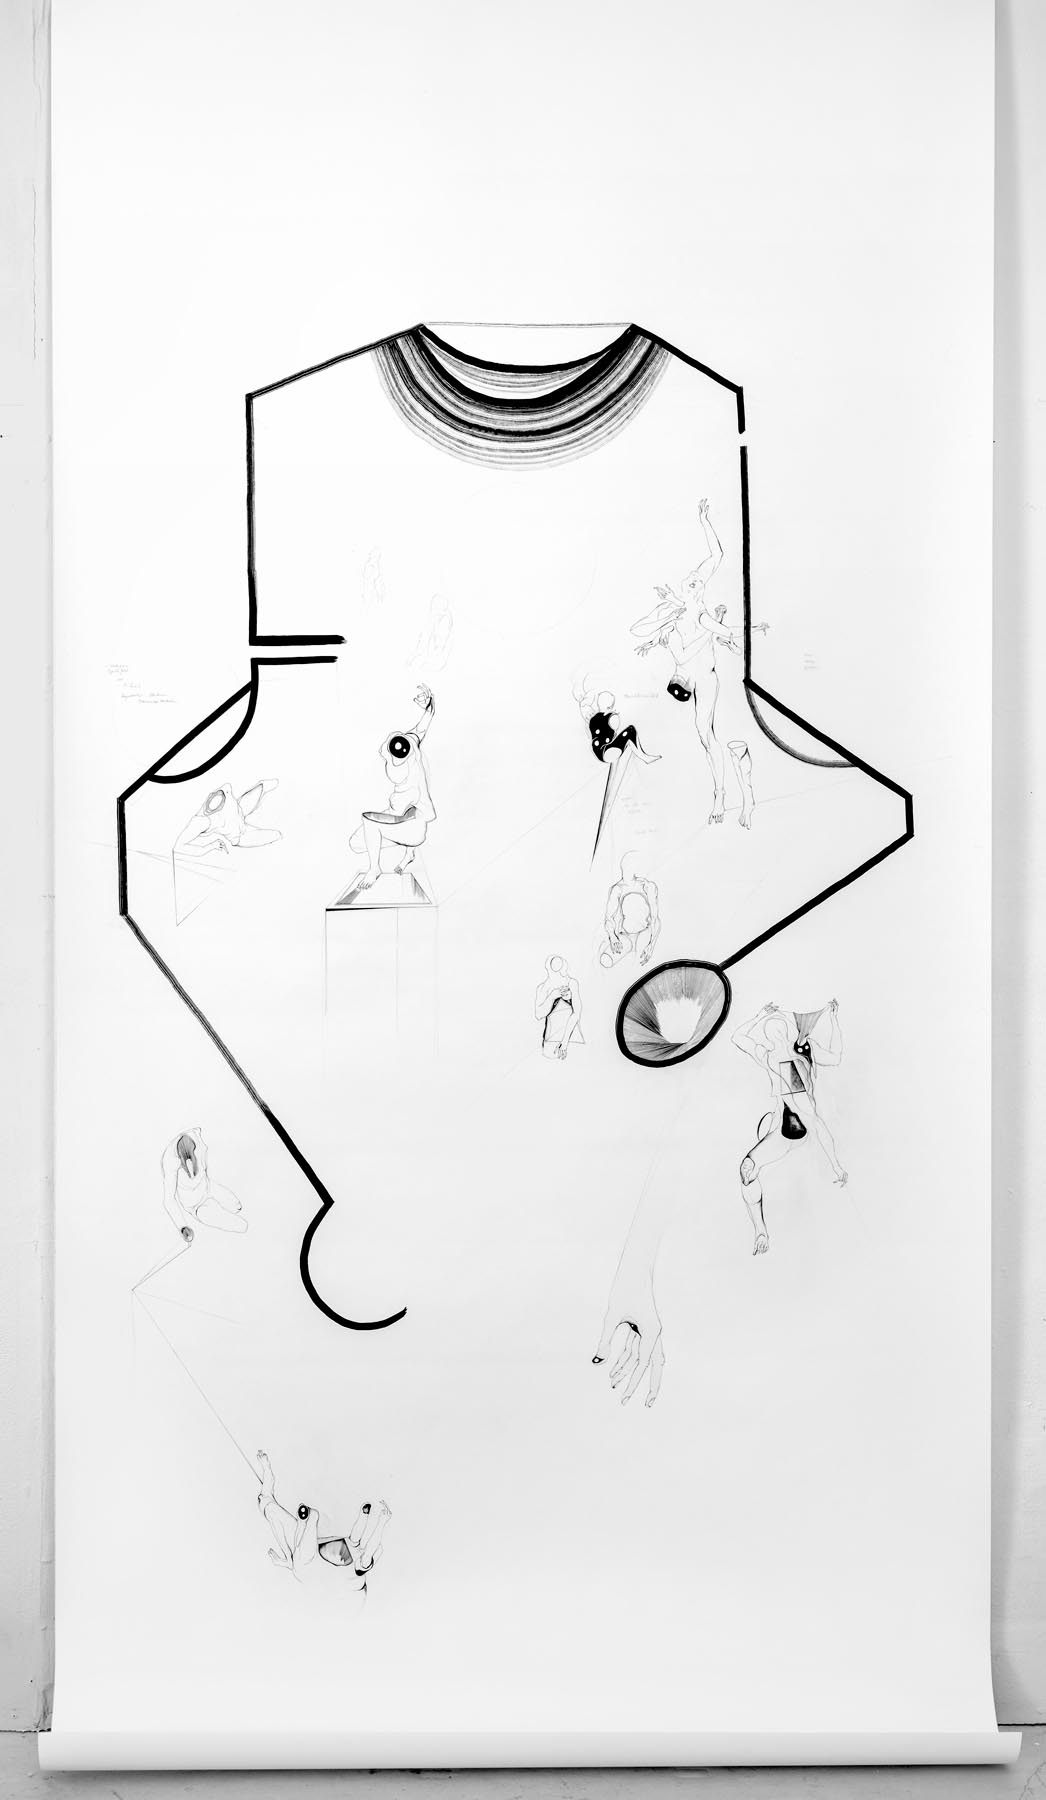 Nina Annabelle Maerkl, Permeable Entities, 2016, installation view: Bowl of glass, drawing (ink on paper), cutouts, polished steel, wood. 200 x 60 x 60 cm